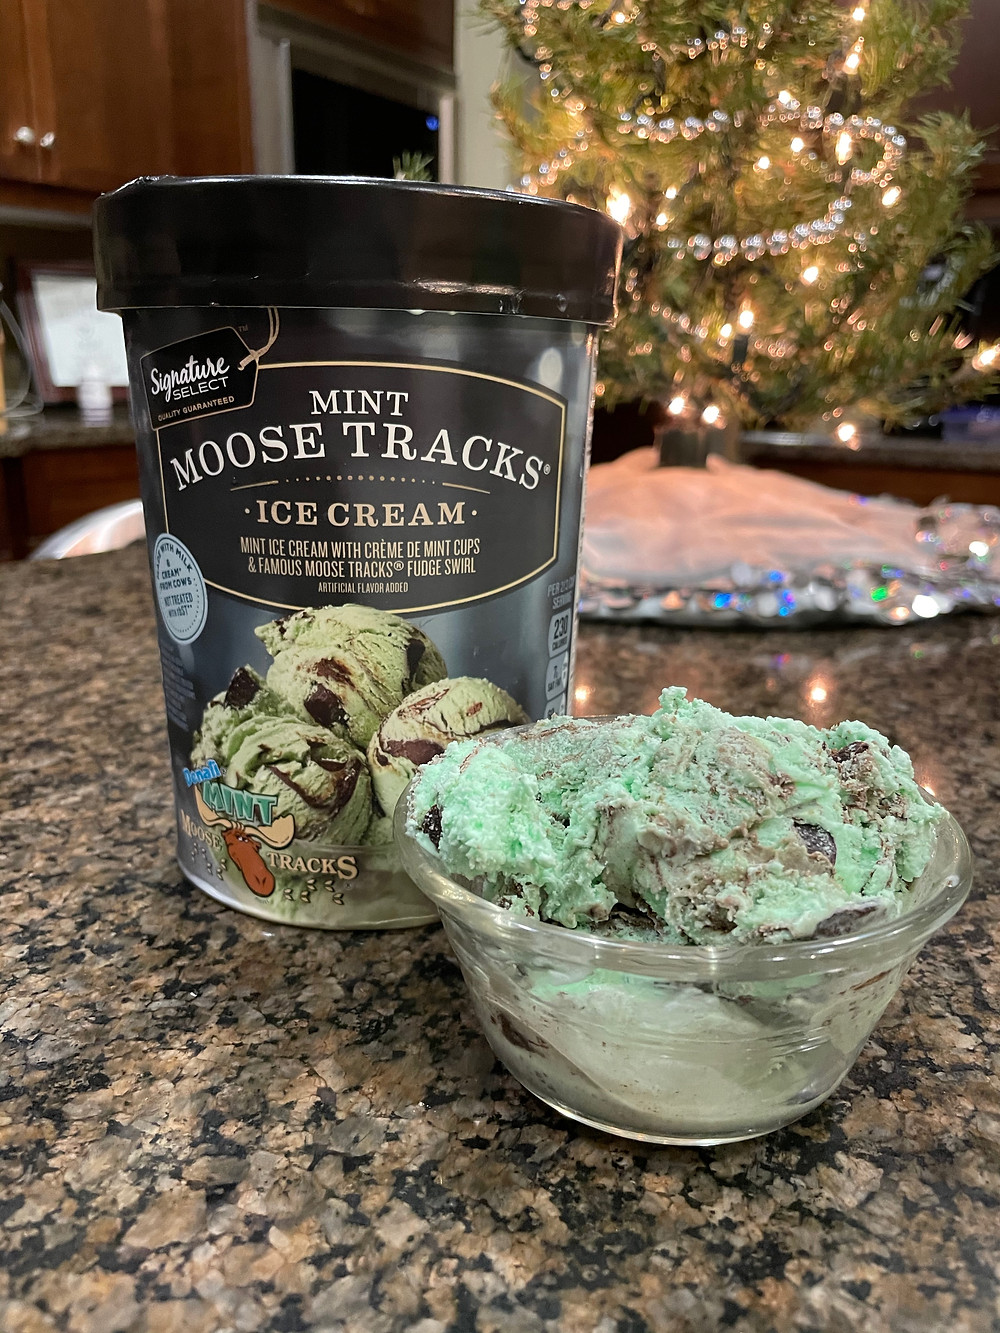 Green Grinch Mint Moose Max Tracks Ice Cream Dessert